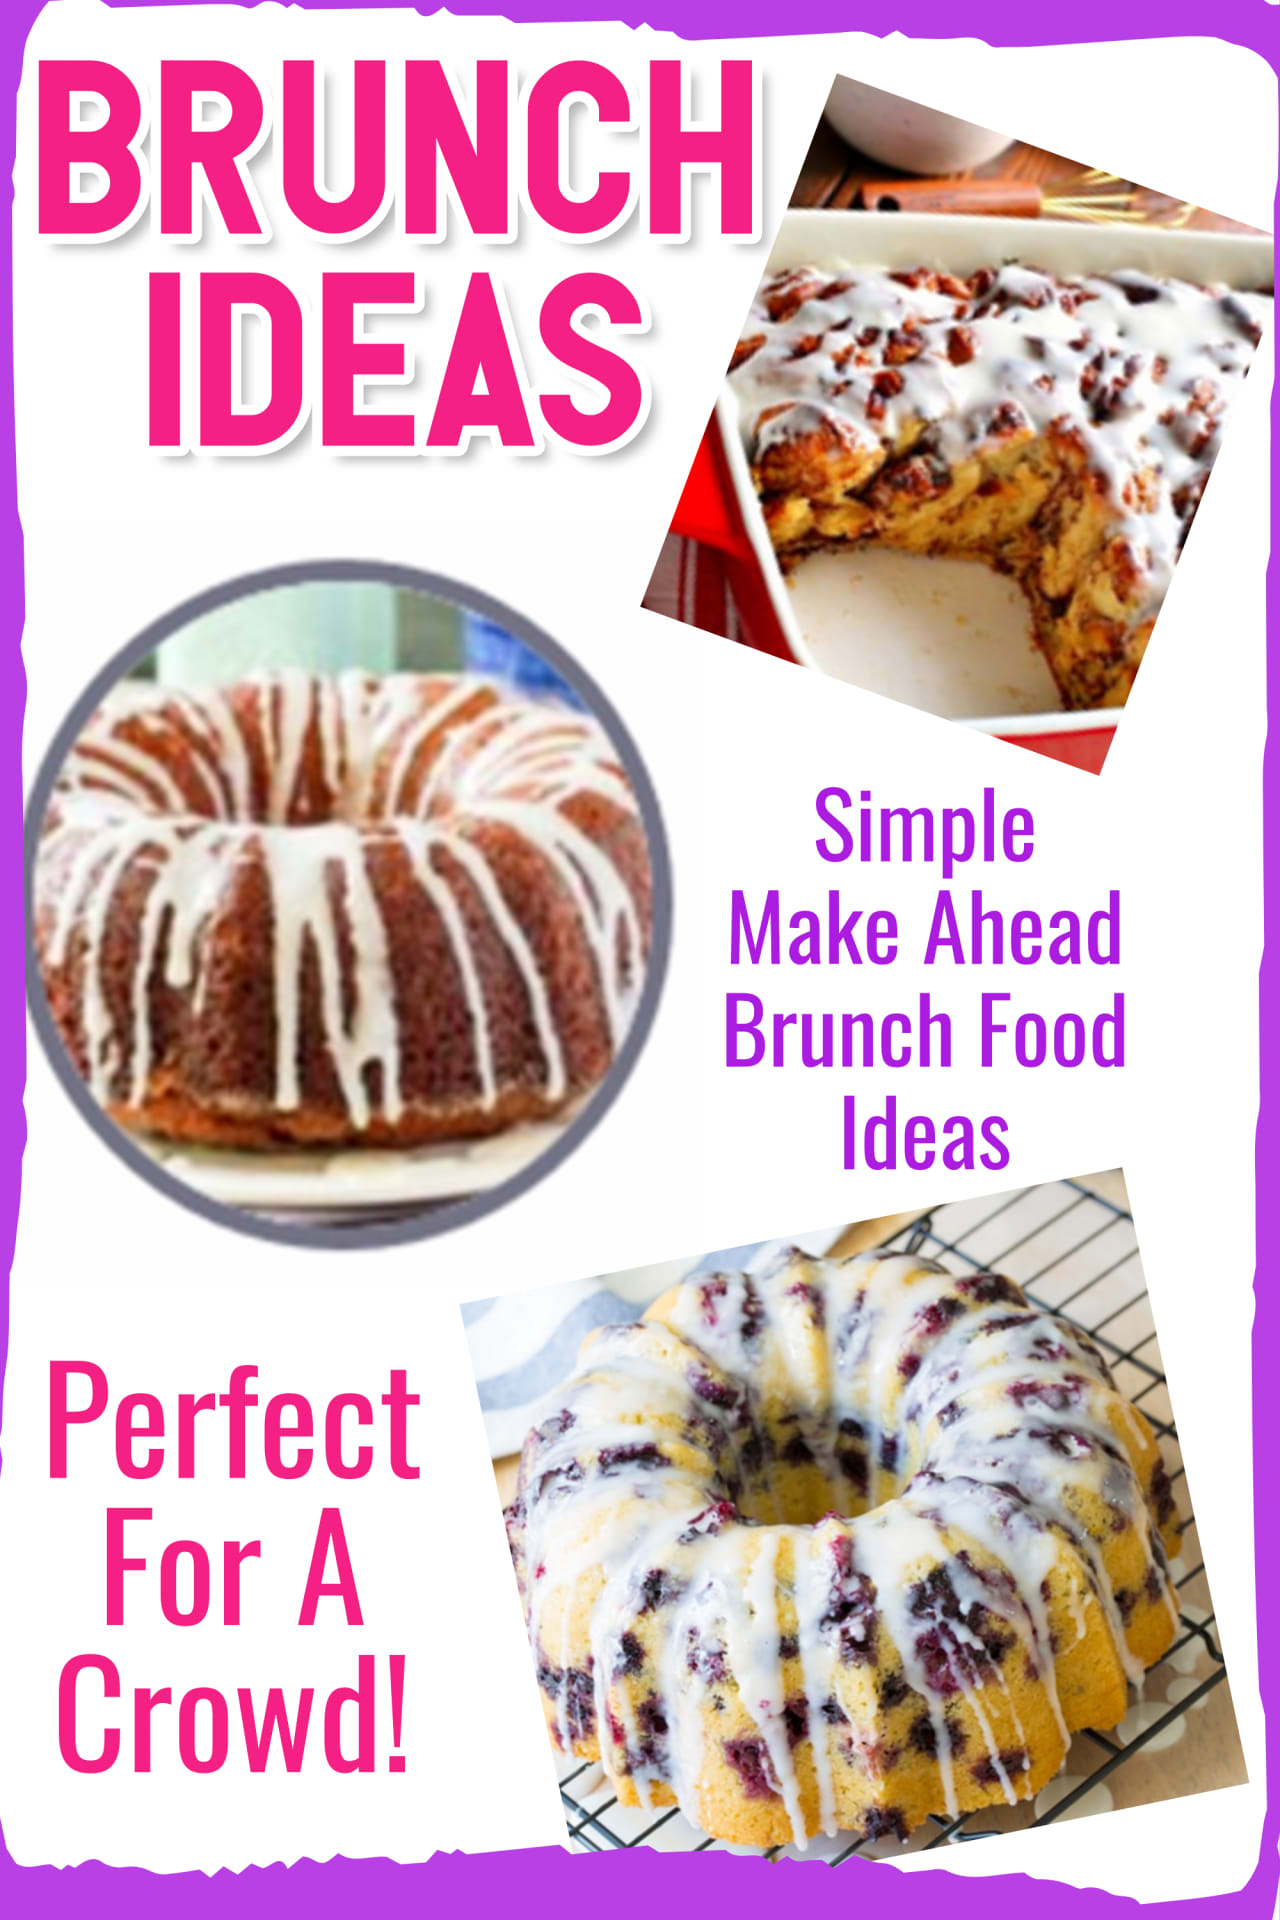 Brunch Ideas - Easy Make Ahead Brunch Food Ideas for a Crowd.  Easy breakfast cake recipes too! These brunch casserole and brunch cake recipes are super simple desserts AND delicious brunch food bundt cakes or breakfast cake ideas. You MUST try these easy brunch coffee cake recipes - perfect for cake ideas for brunch , after Sunday church, funeral food, Christmas morning, Mothers or Fathers day or for feeding any crowd or large group!